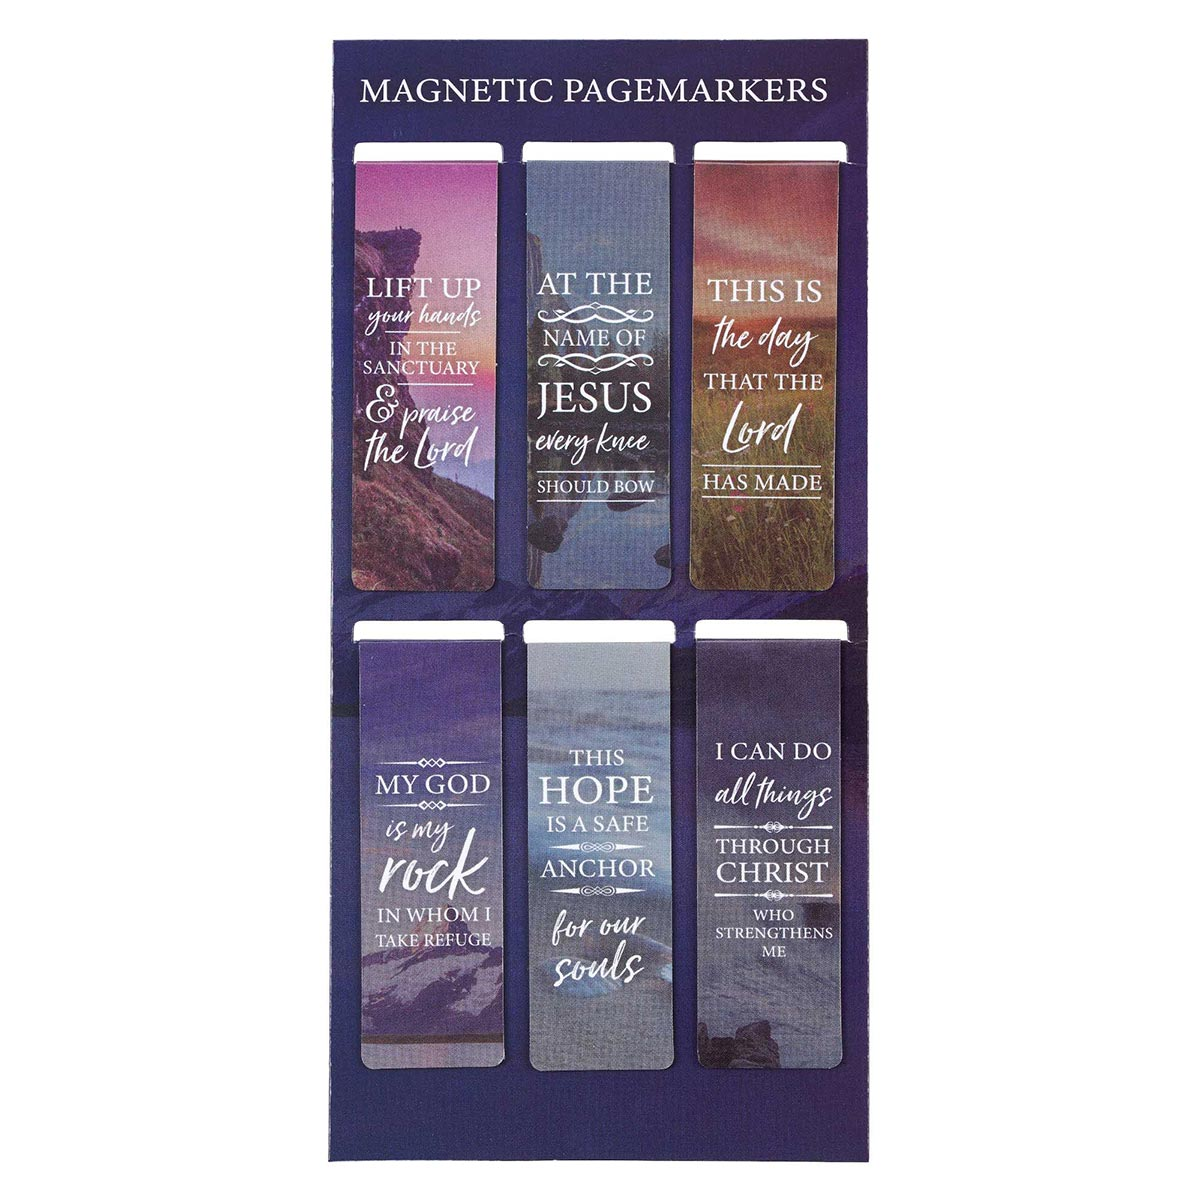 Lift Up Your Hands Magnetic Bookmark Set - Psalm  134:2